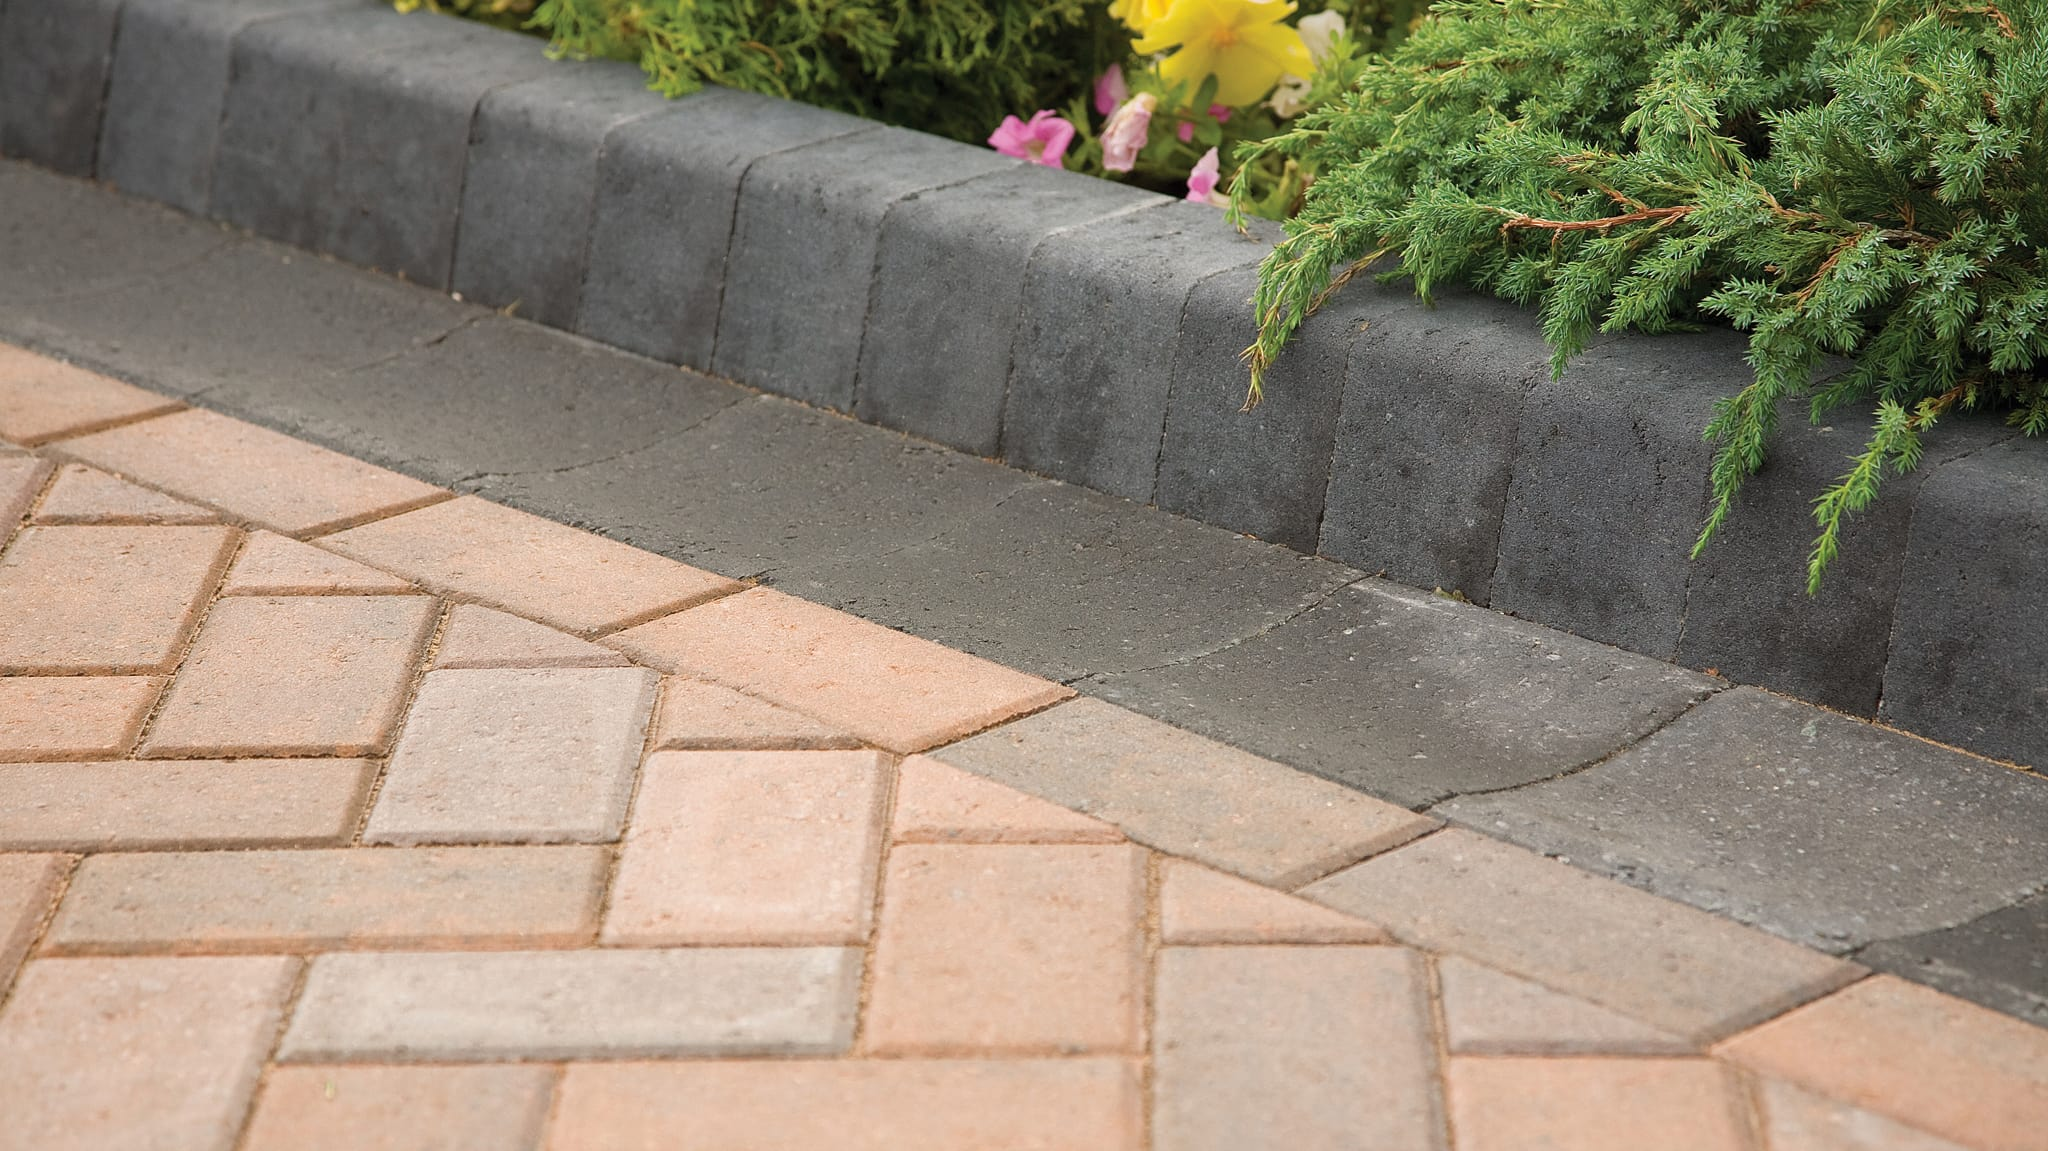 keykerb used as a flowerbed